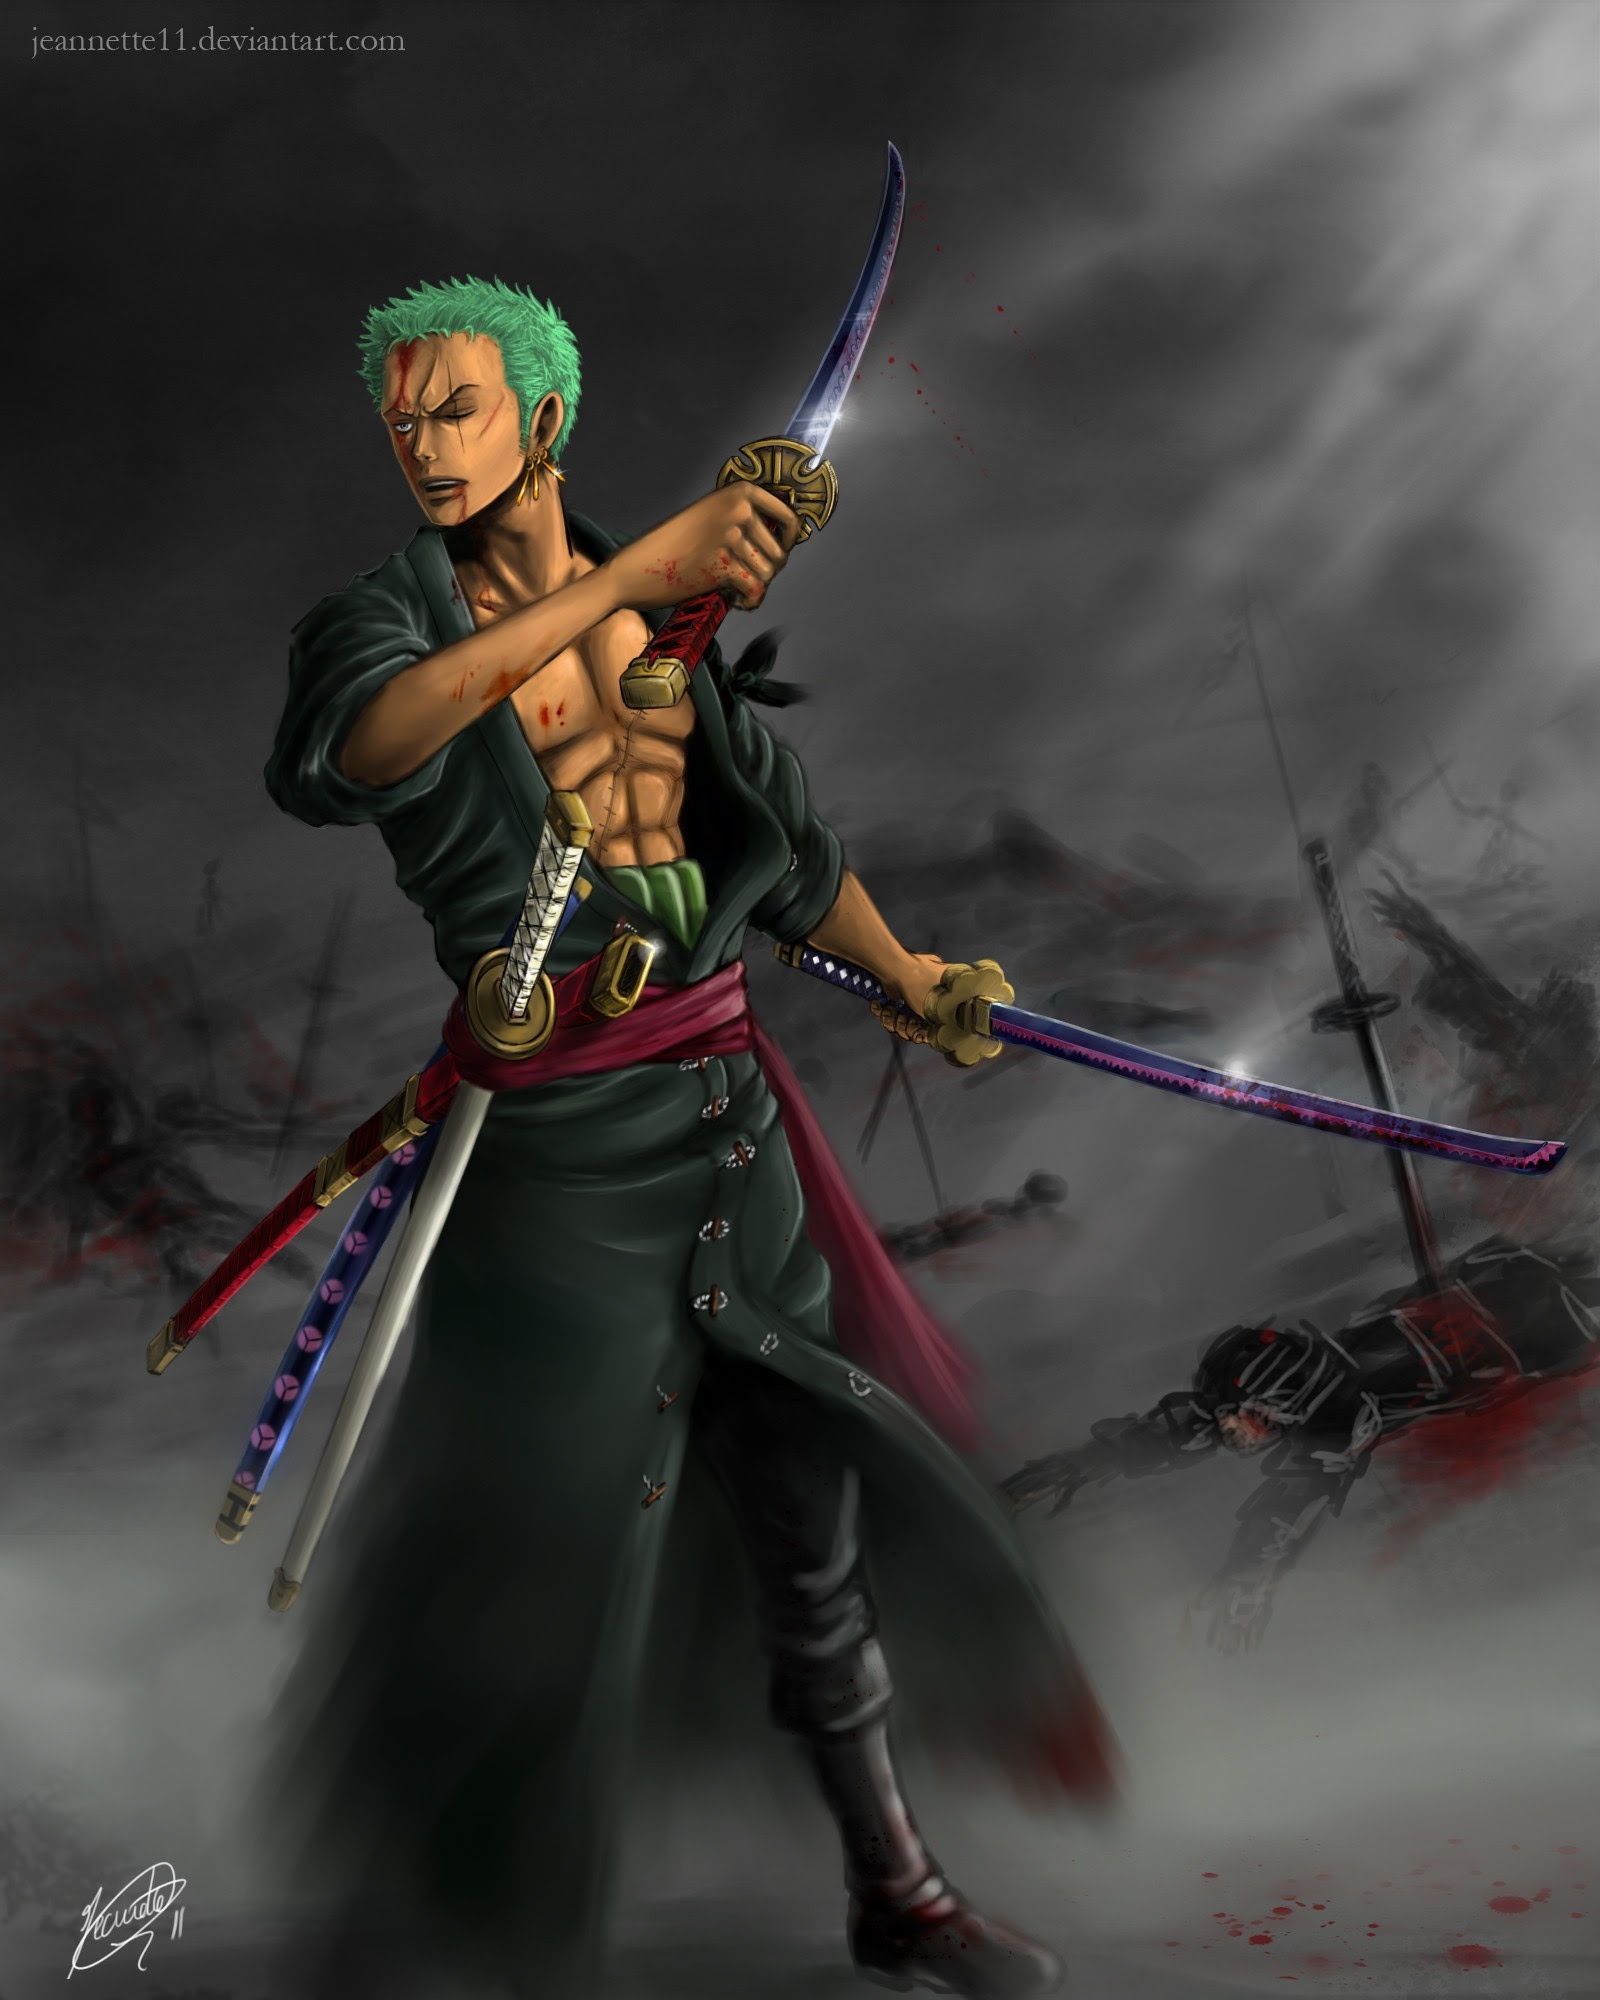 Download 6500 Wallpaper 3d Roronoa Zoro Terbaik Wallpaper Keren